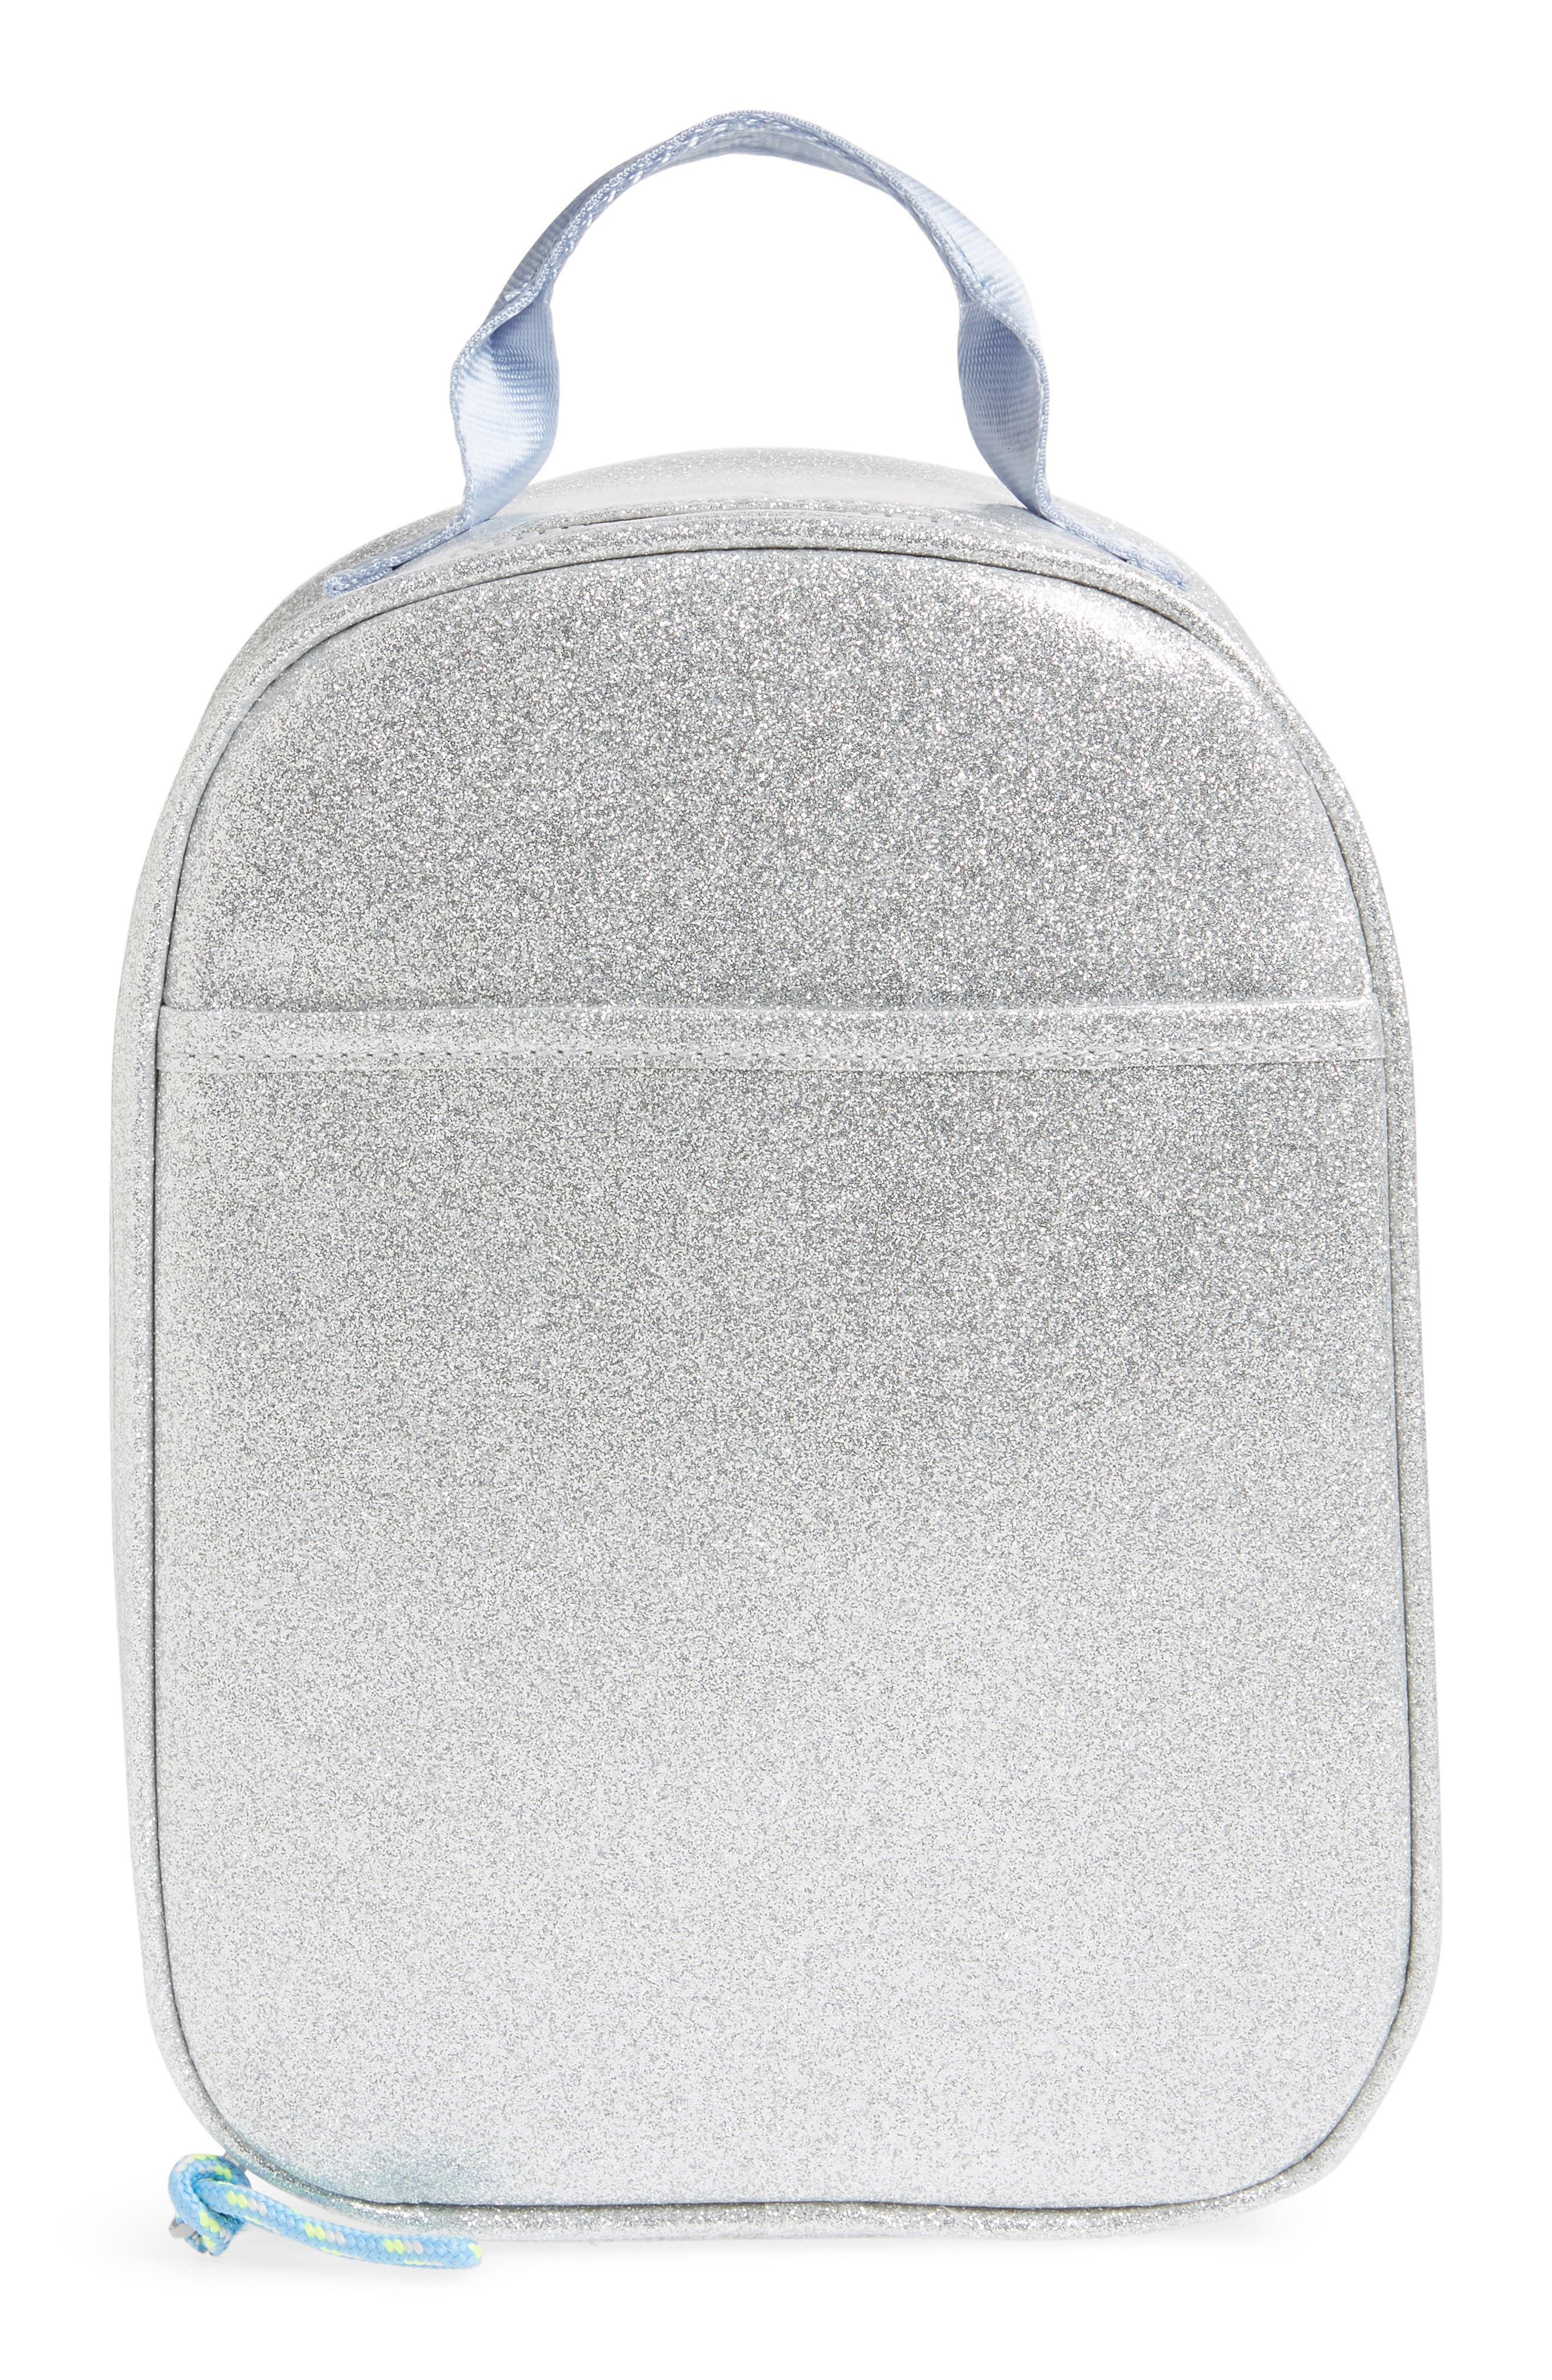 Glitter Lunchbox,                         Main,                         color, 020